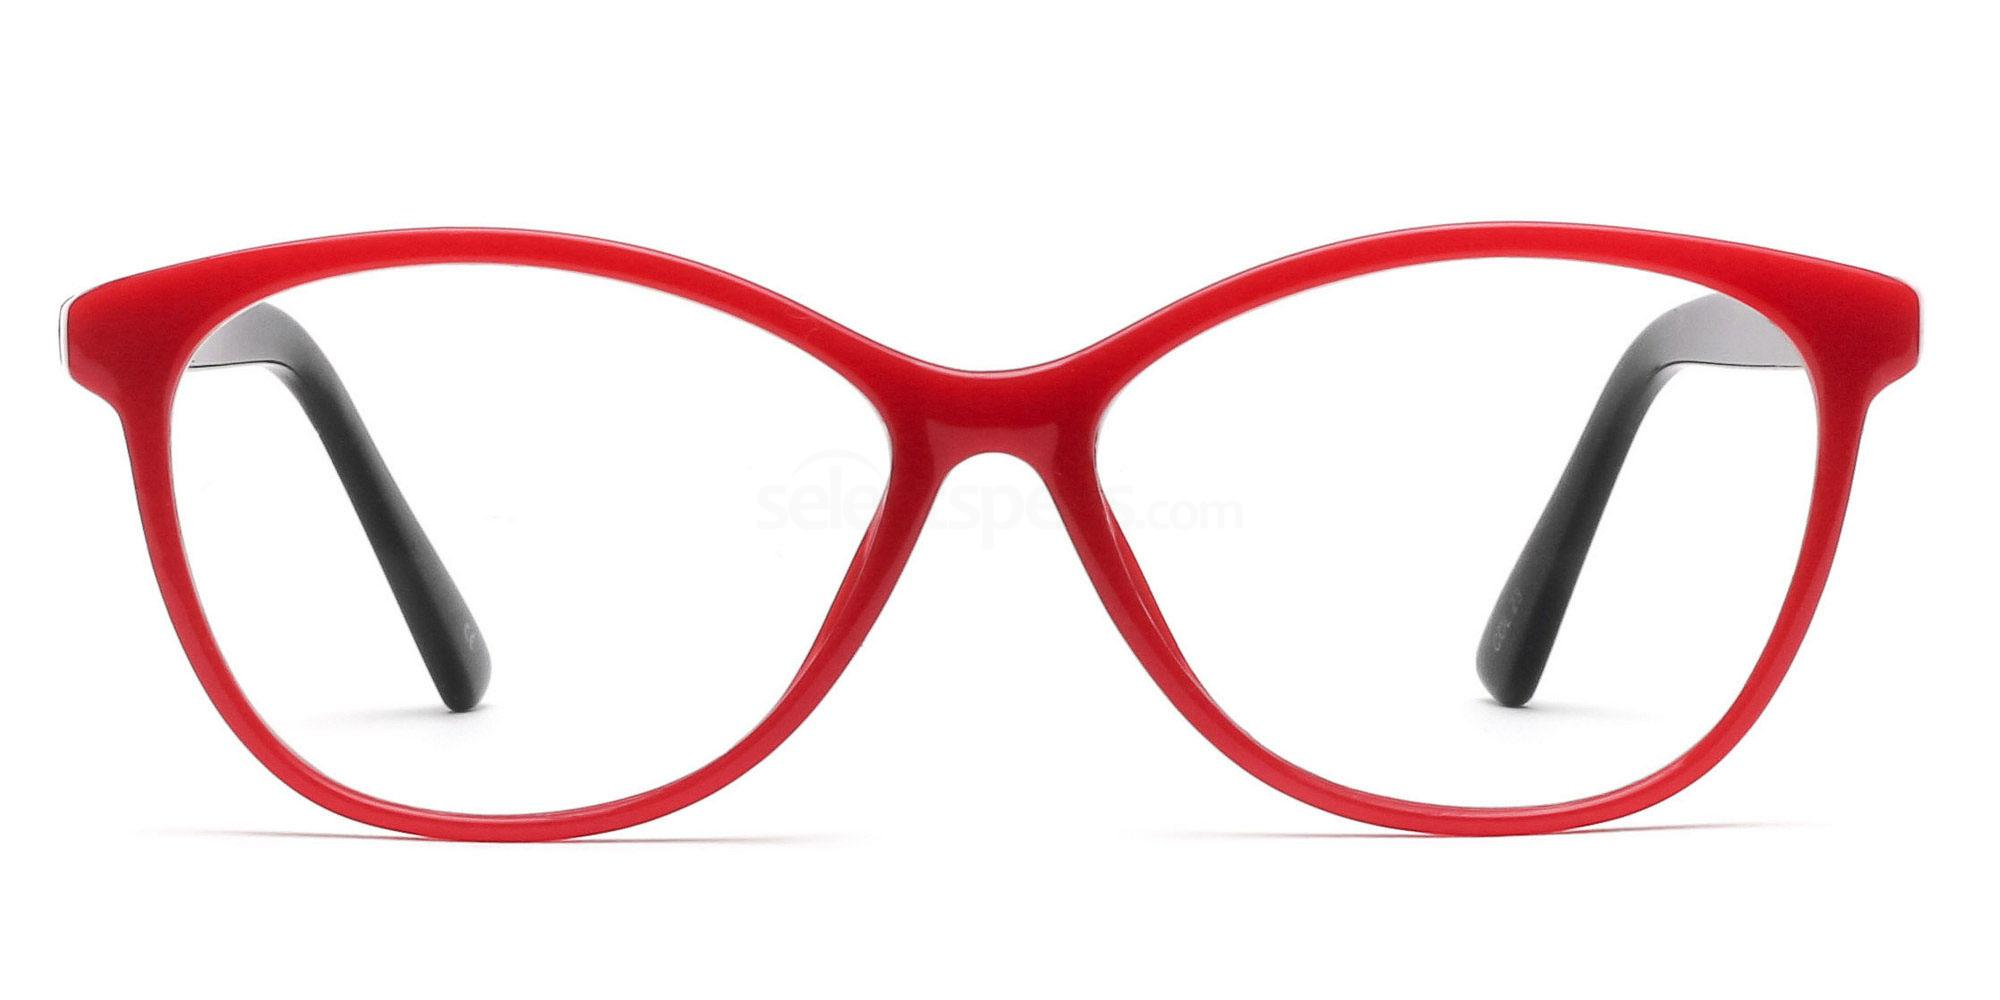 Savannah 2439 - Red and Black glasses | Free lenses | SelectSpecs